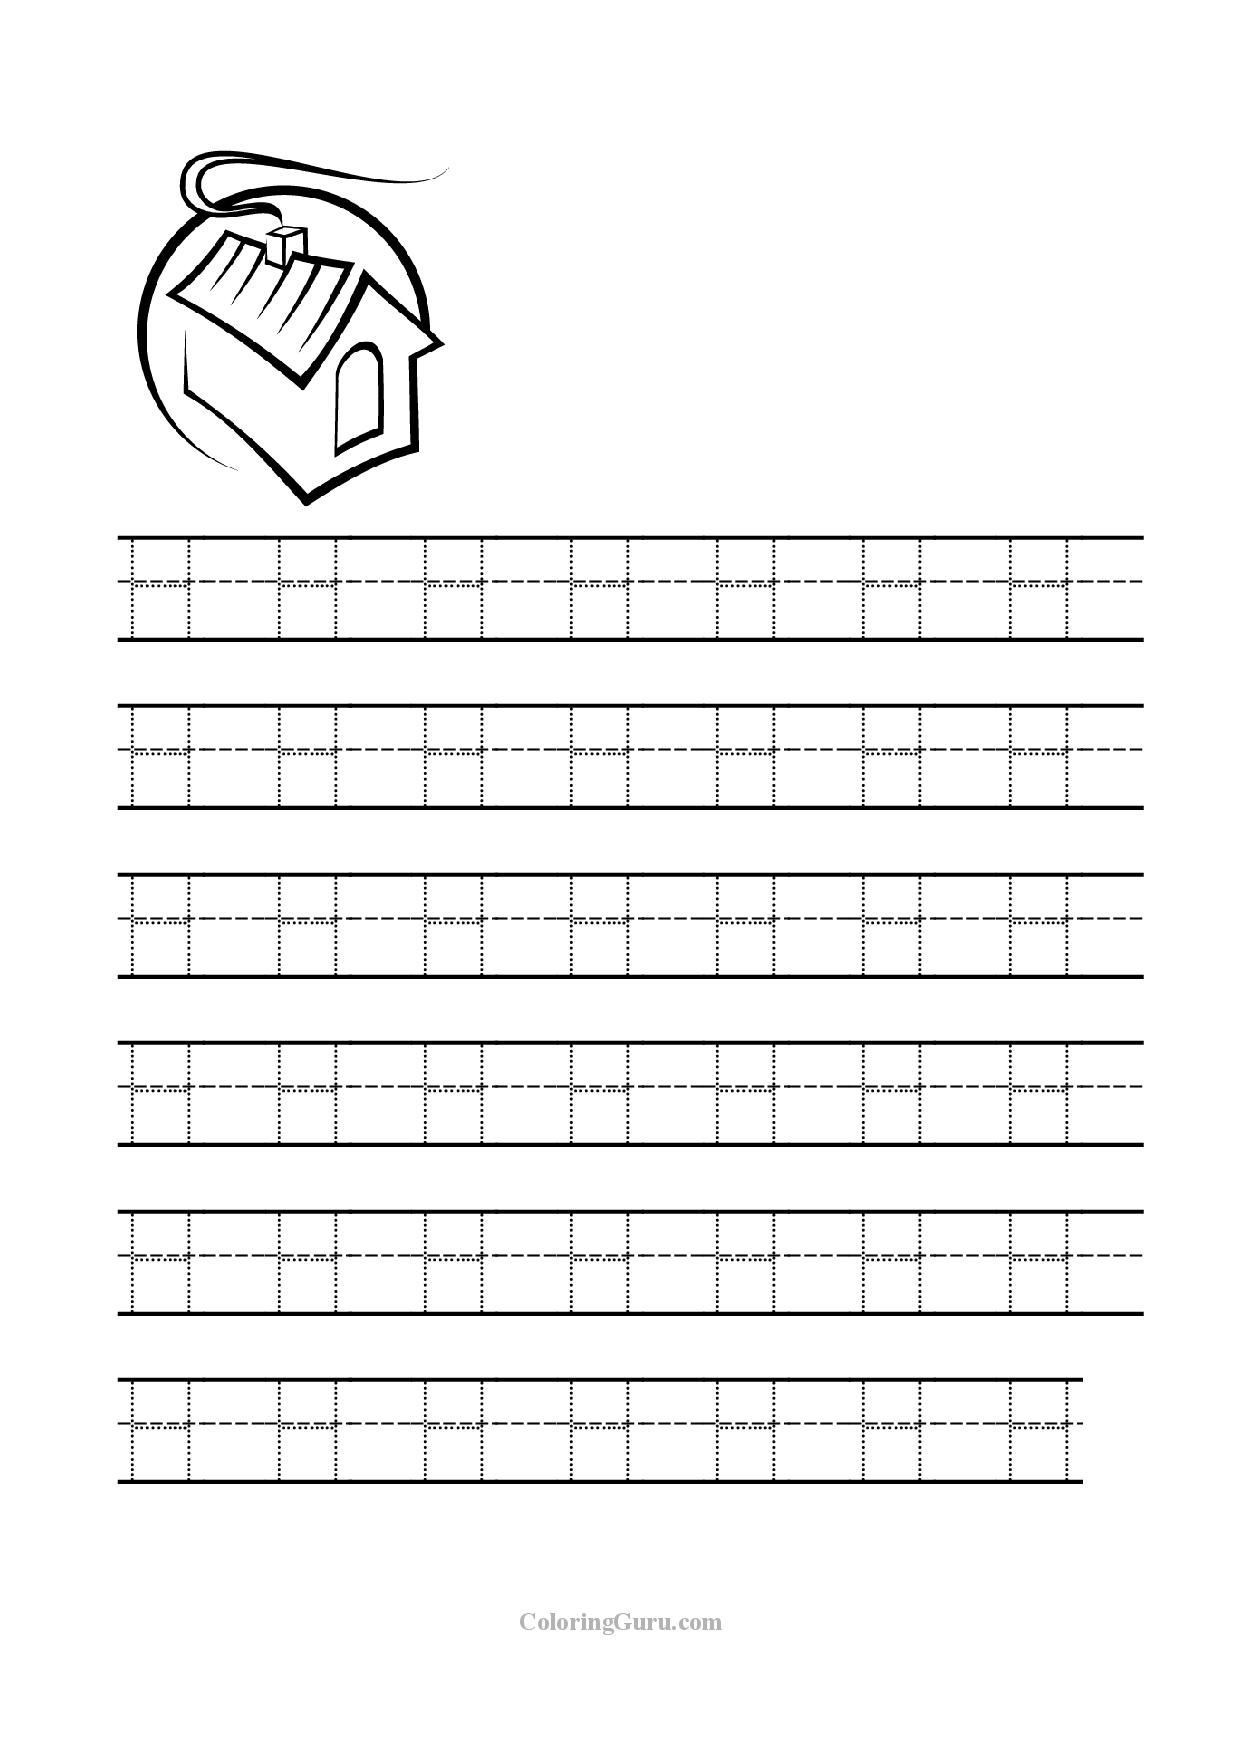 Letter H Tracing Worksheets Preschool Free Printable Tracing Letter H Worksheets for Preschool